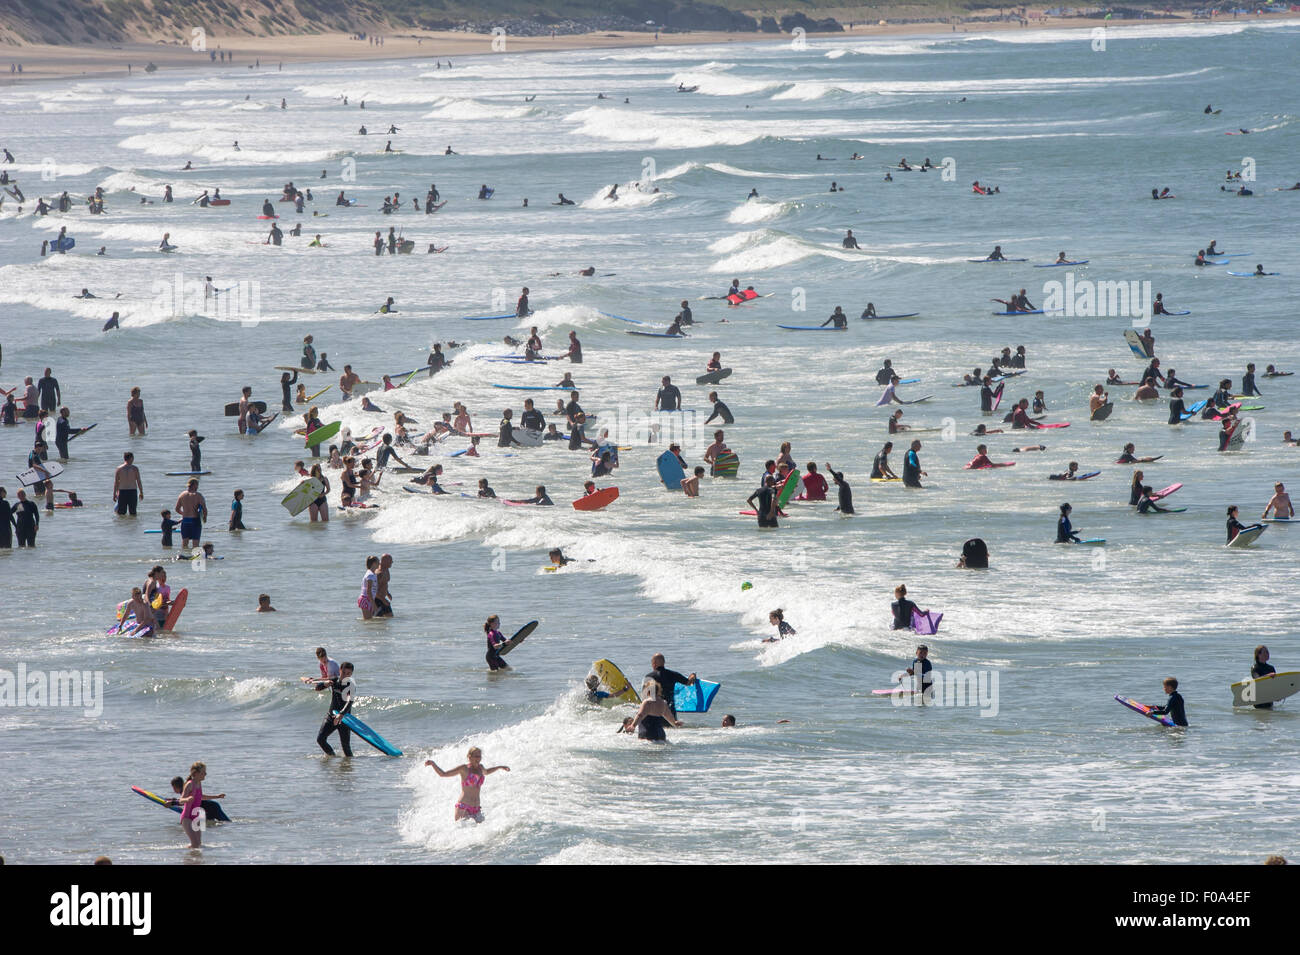 Busy Woolacombe beach in Devon UK in the summer, voted best UK beach on TripAdvisor 2016 - Stock Image